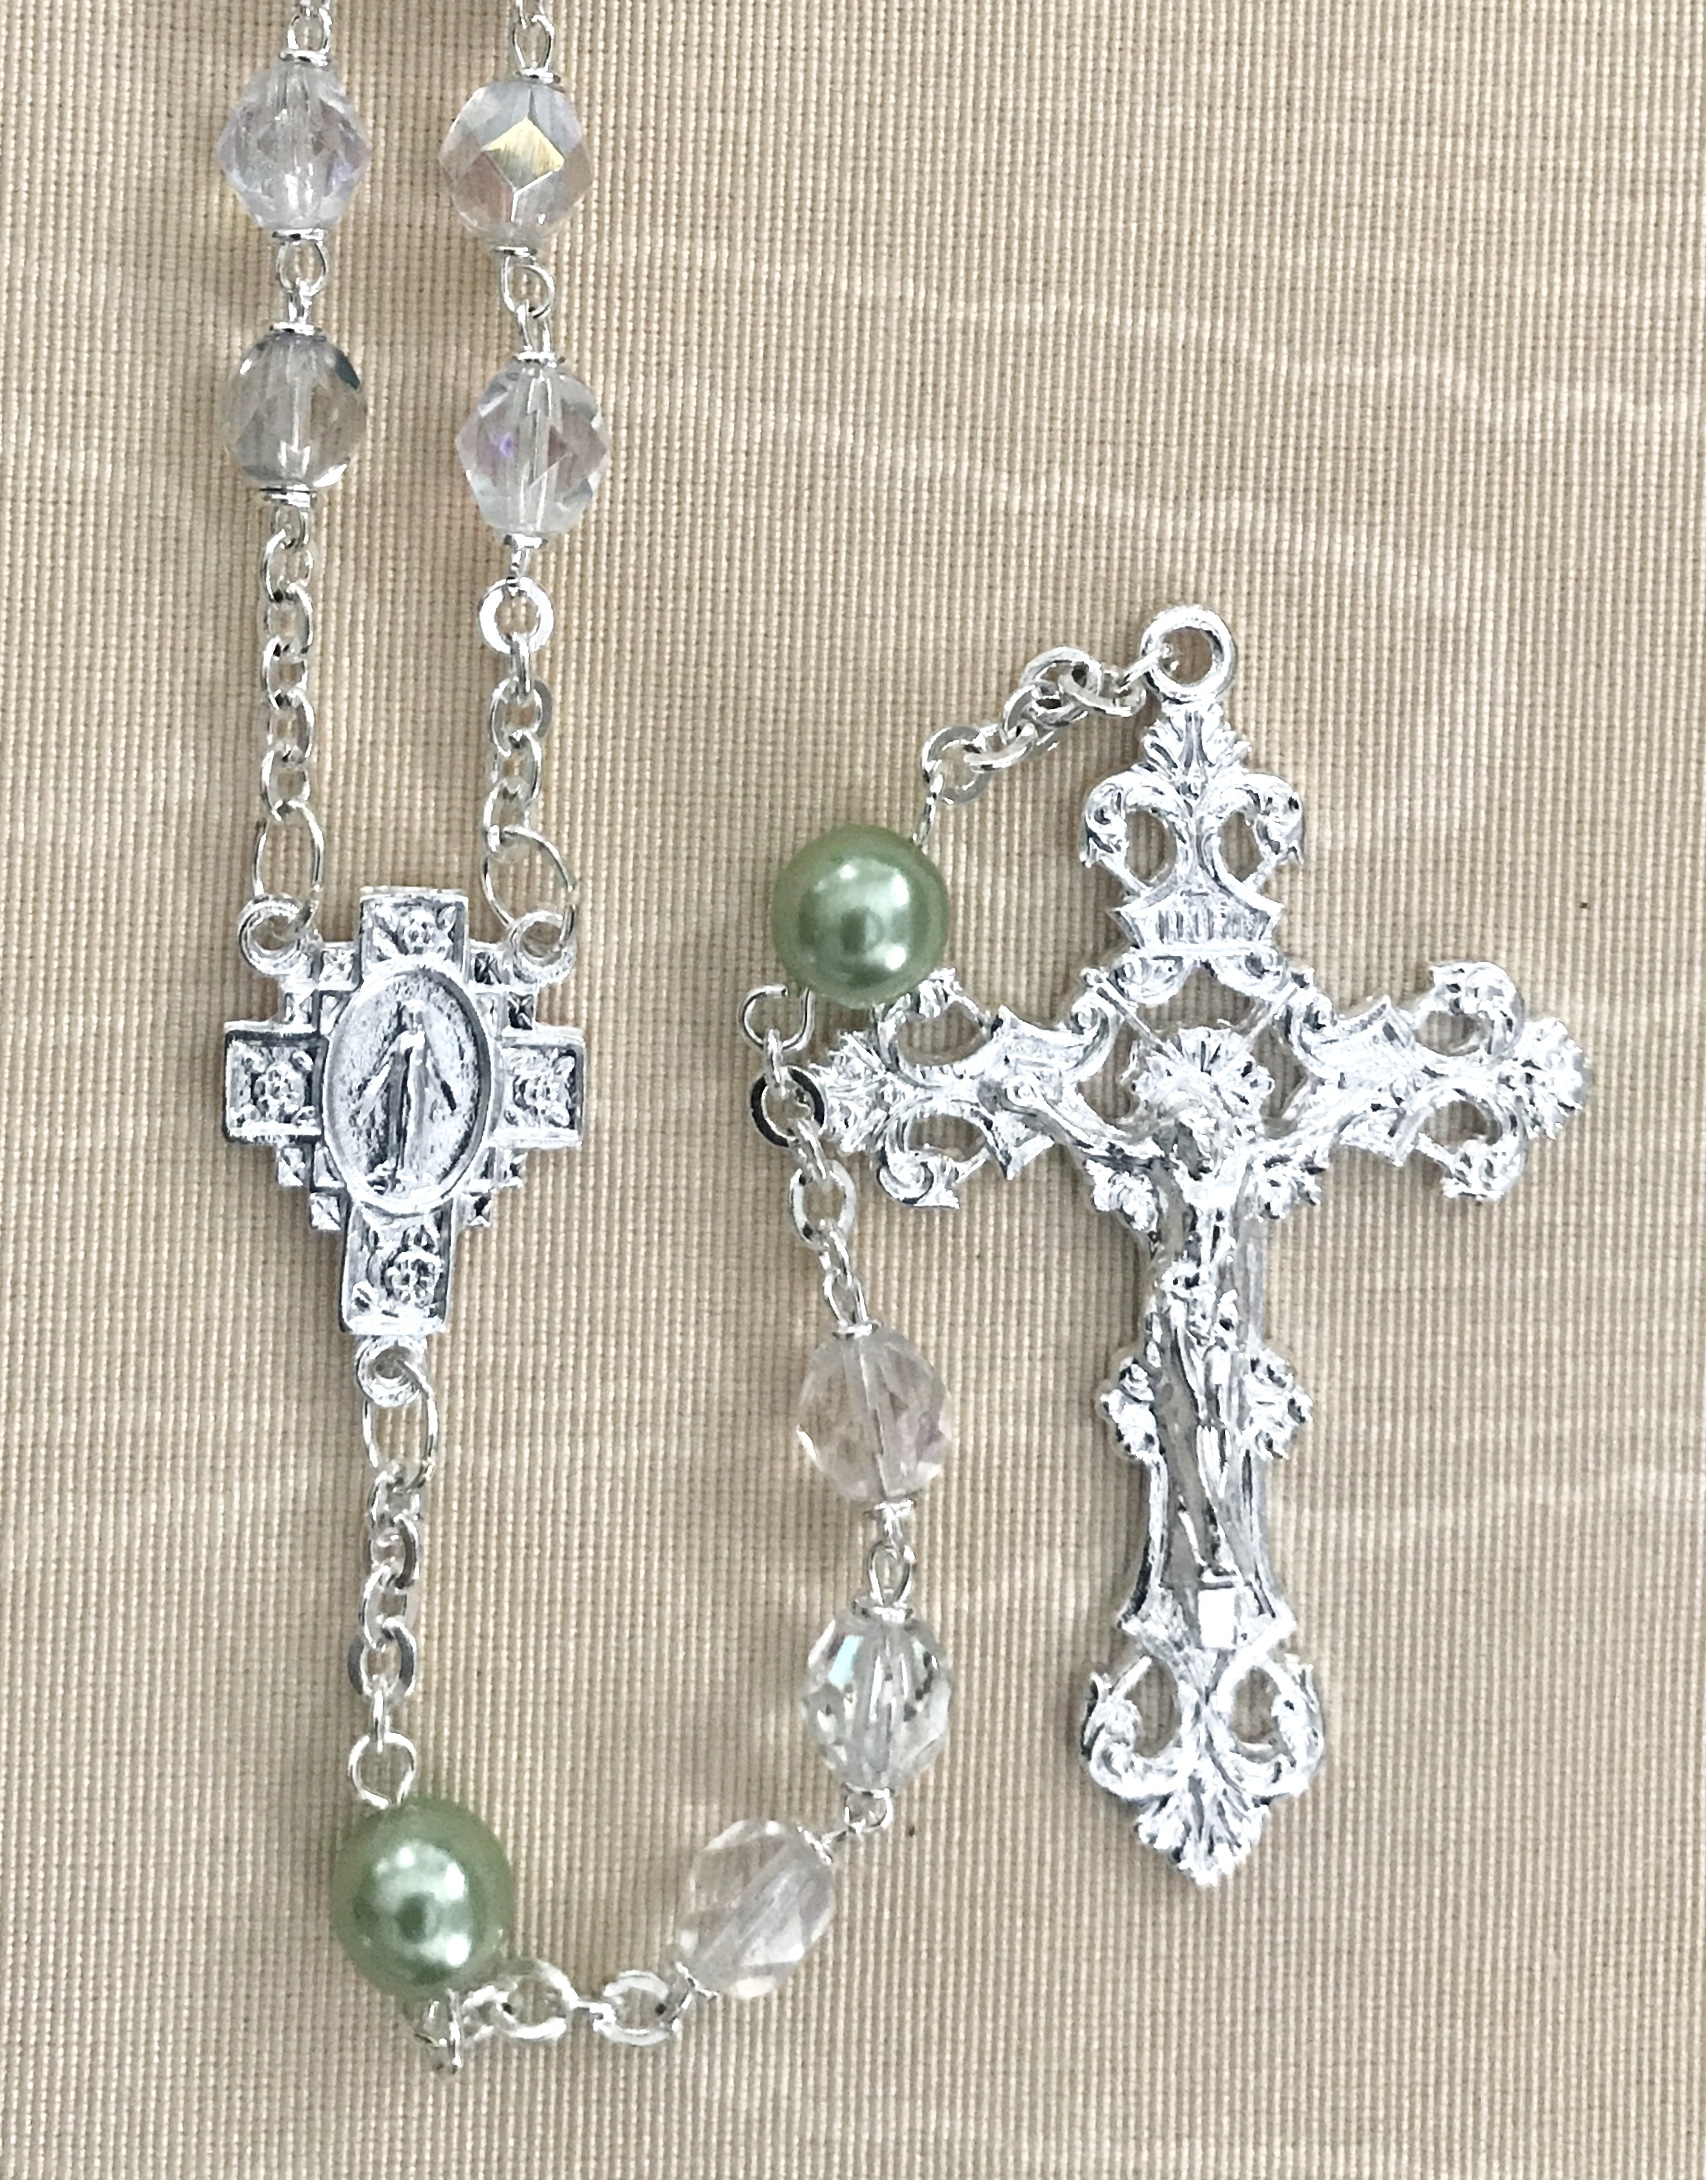 August 7mm CRYSTAL AB with PERIDOT PEARL OUR FATHER BEADS S.S. PLATE LOC-LINK - GIFT BOXED